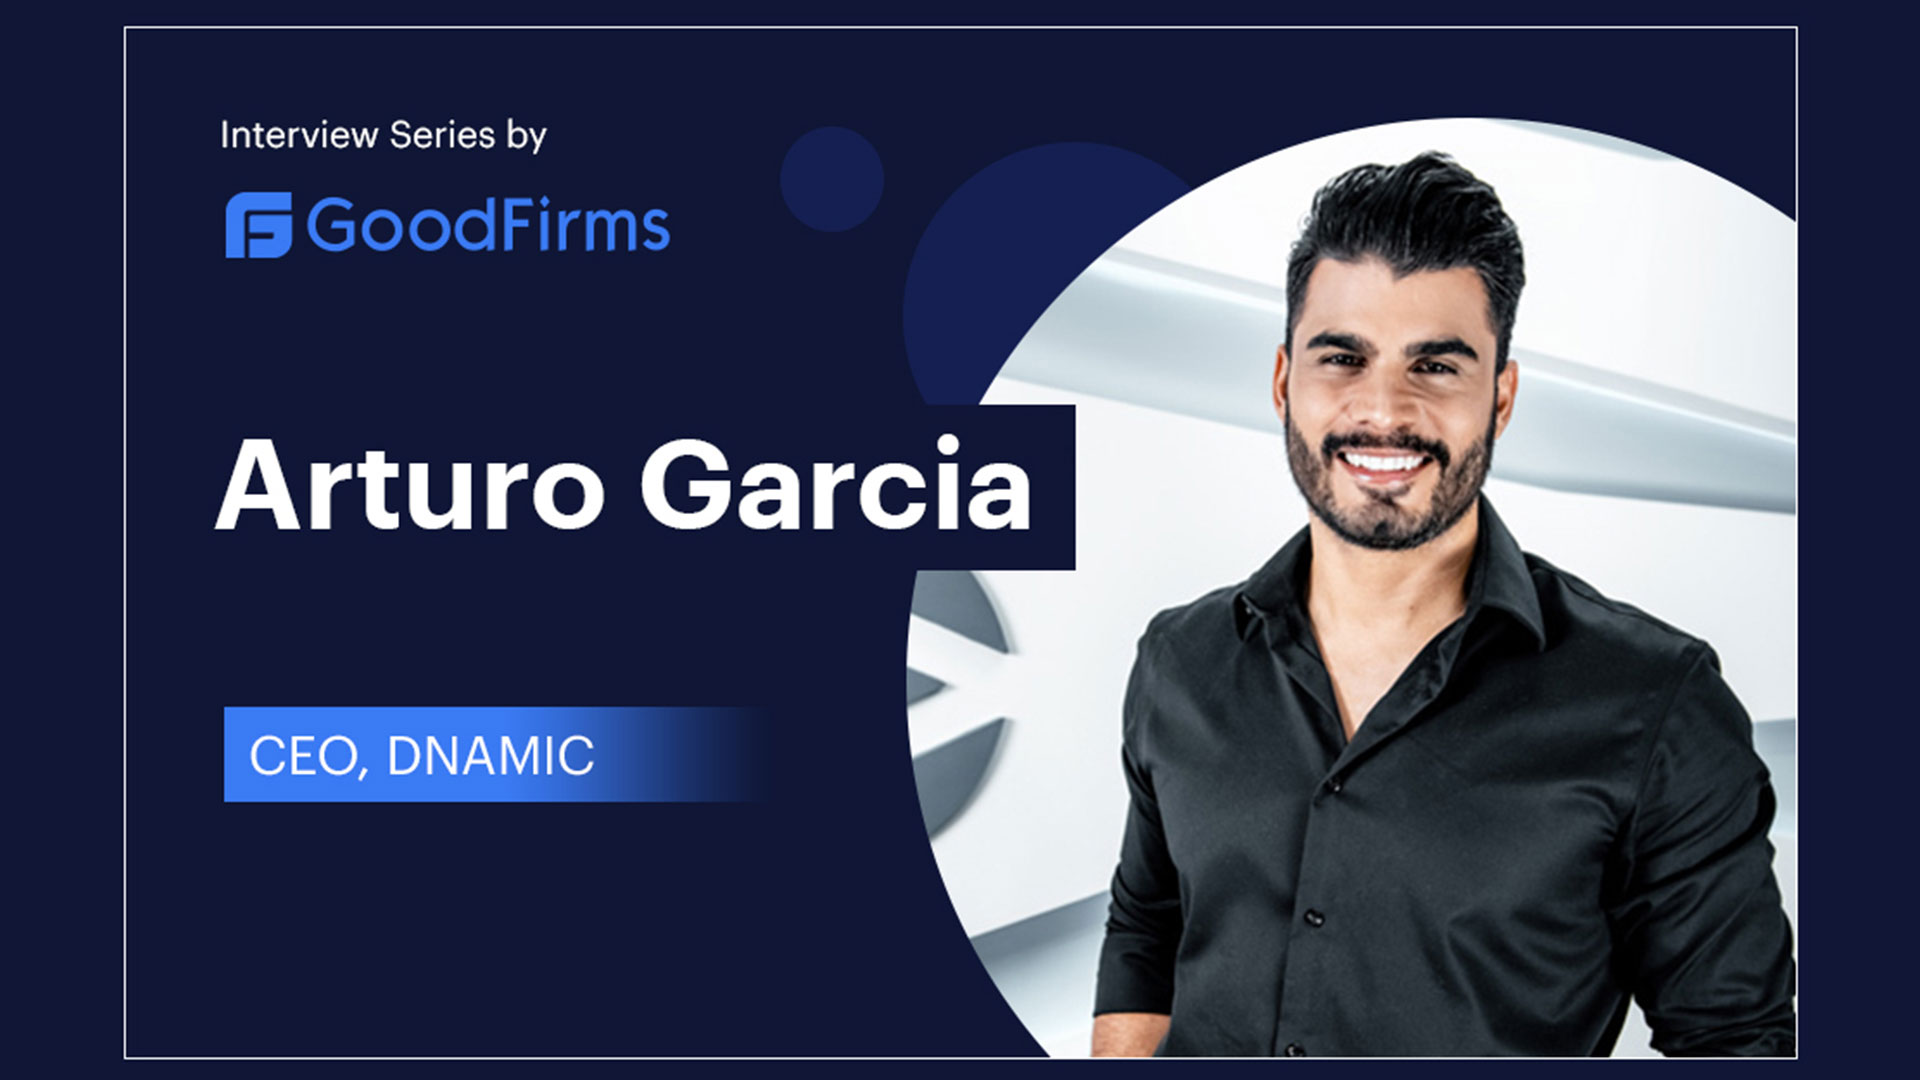 DNAMIC - Arturo Garcia Interview for Goodfirms